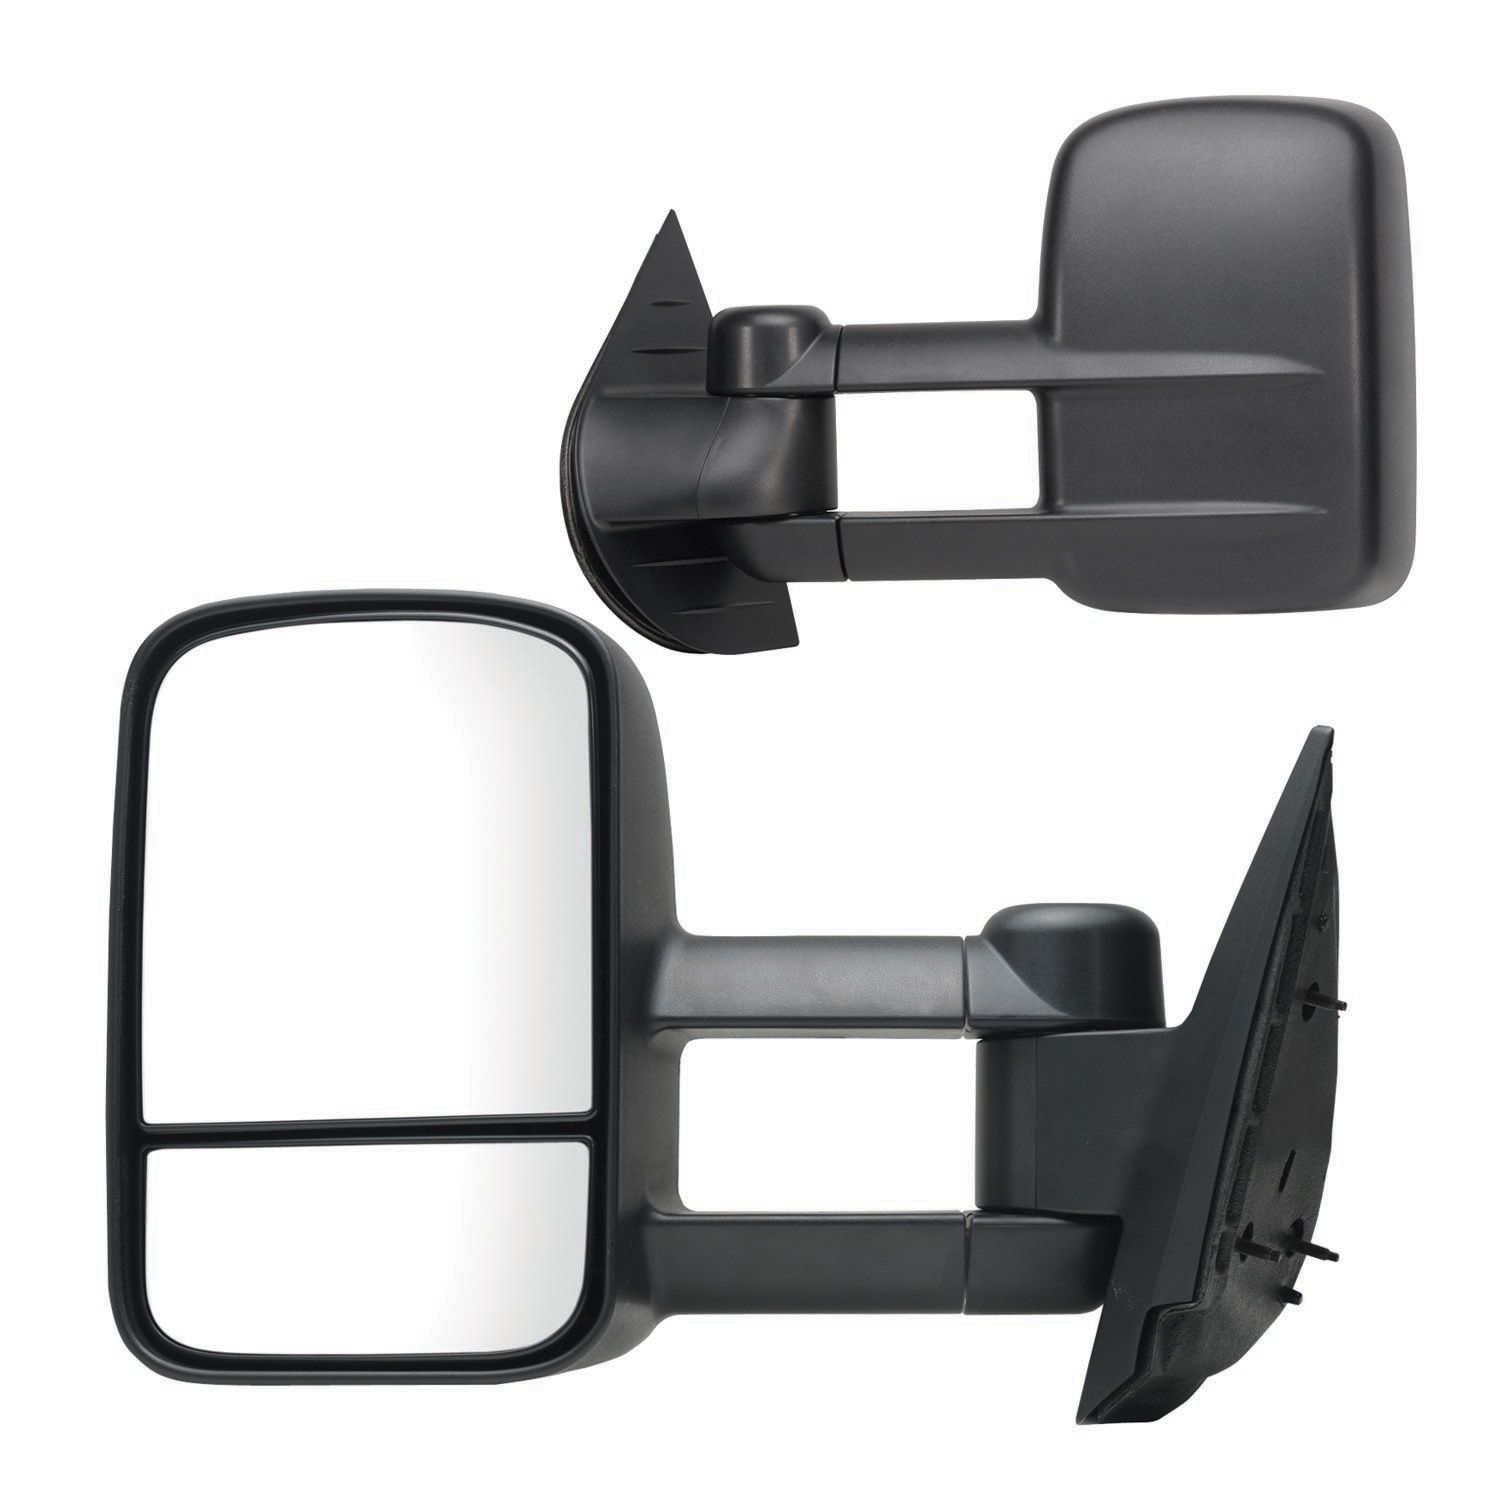 GMC Sierra 3500HD 2015-2014 Extendable Towing Mirrors